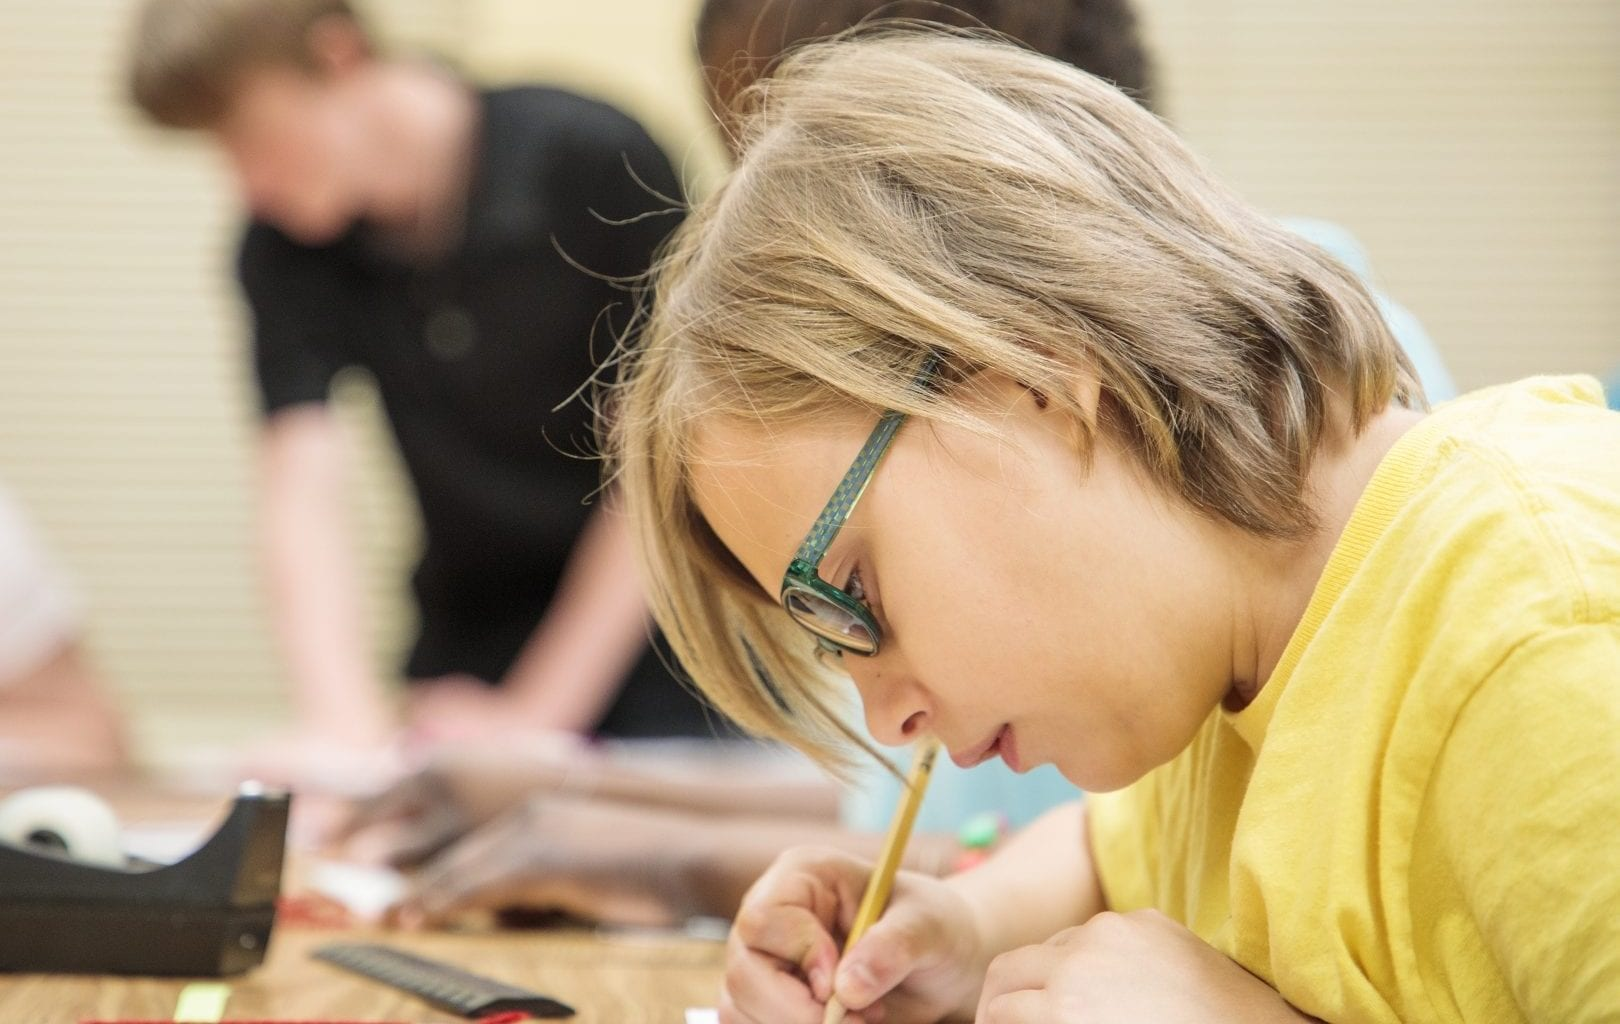 a student in glasses working at a desk with a pencil